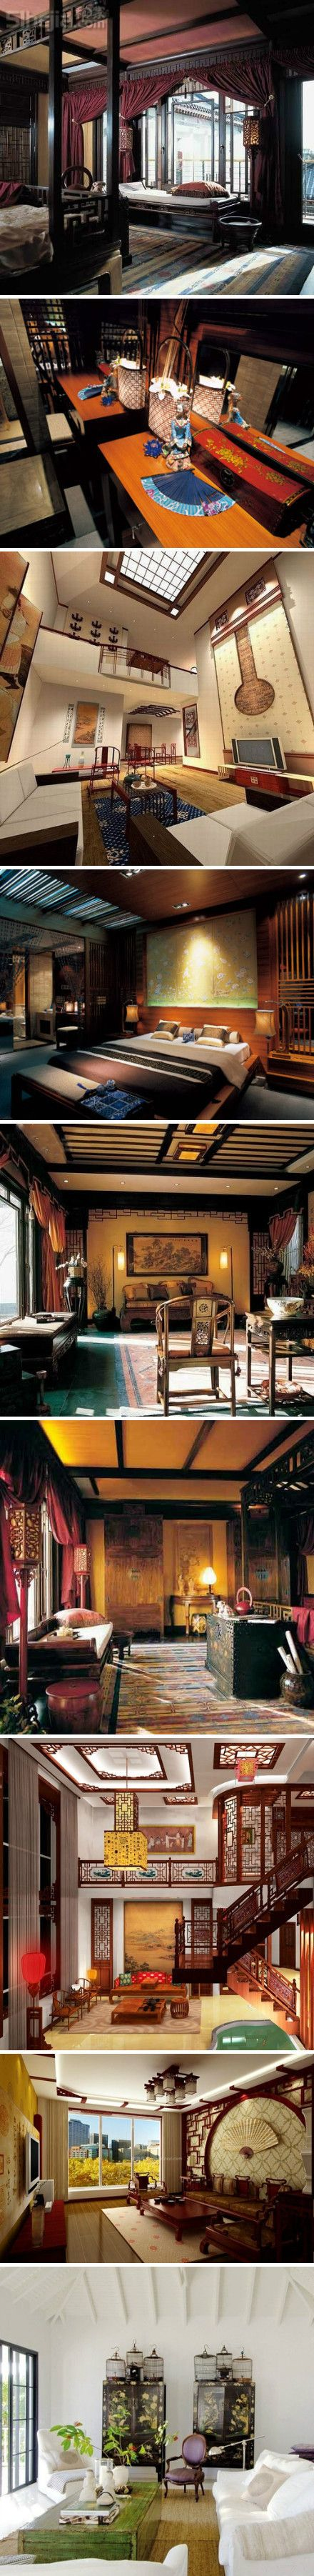 Ancient chinese home interior - Find This Pin And More On Chinese Interiors Home Design Idea